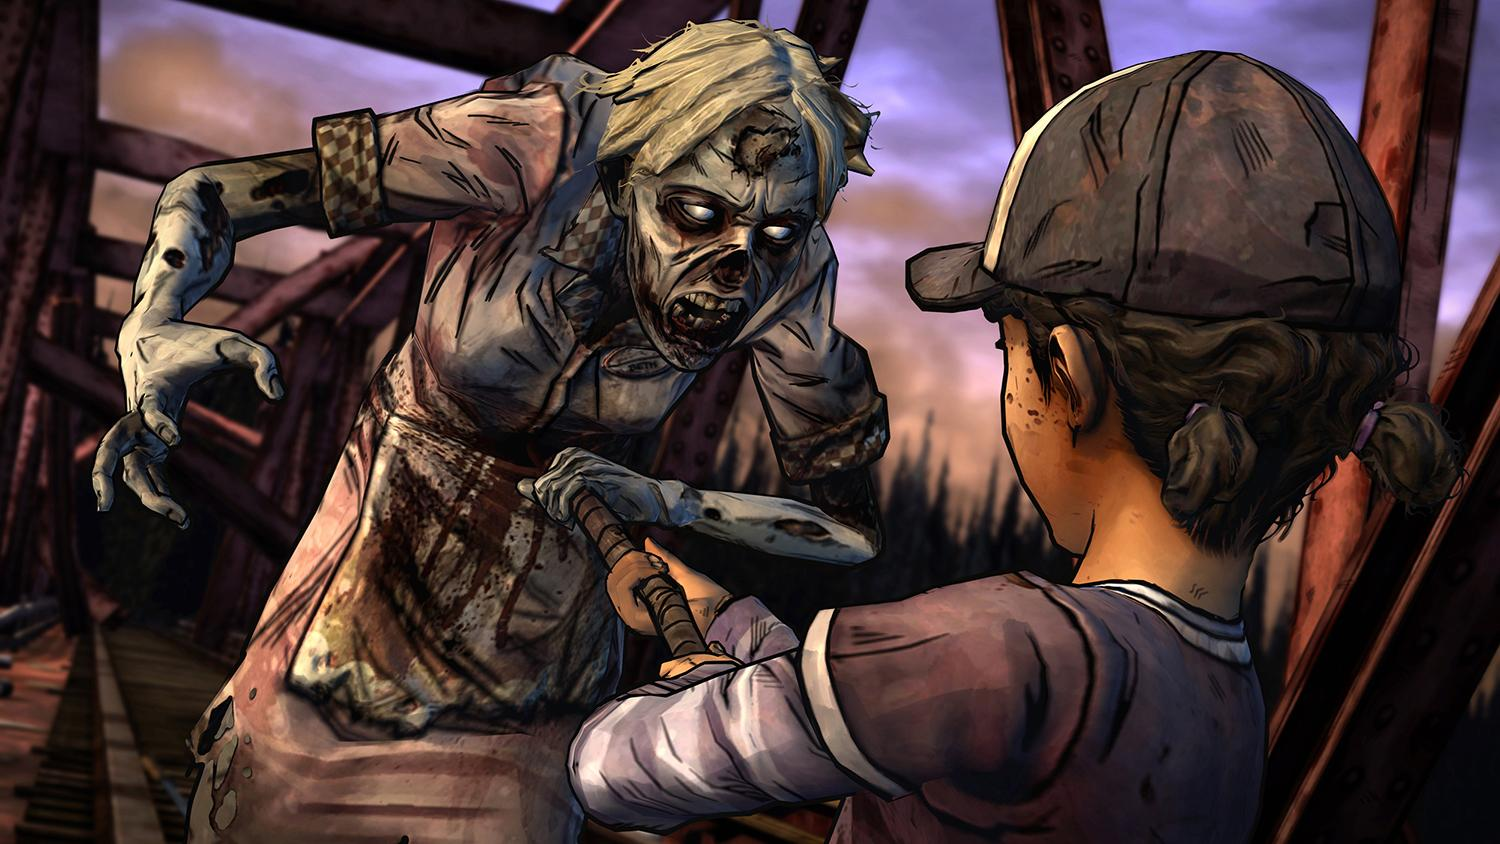 The Walking Dead Season 2 comes to PS4 and Xbox One on October 21